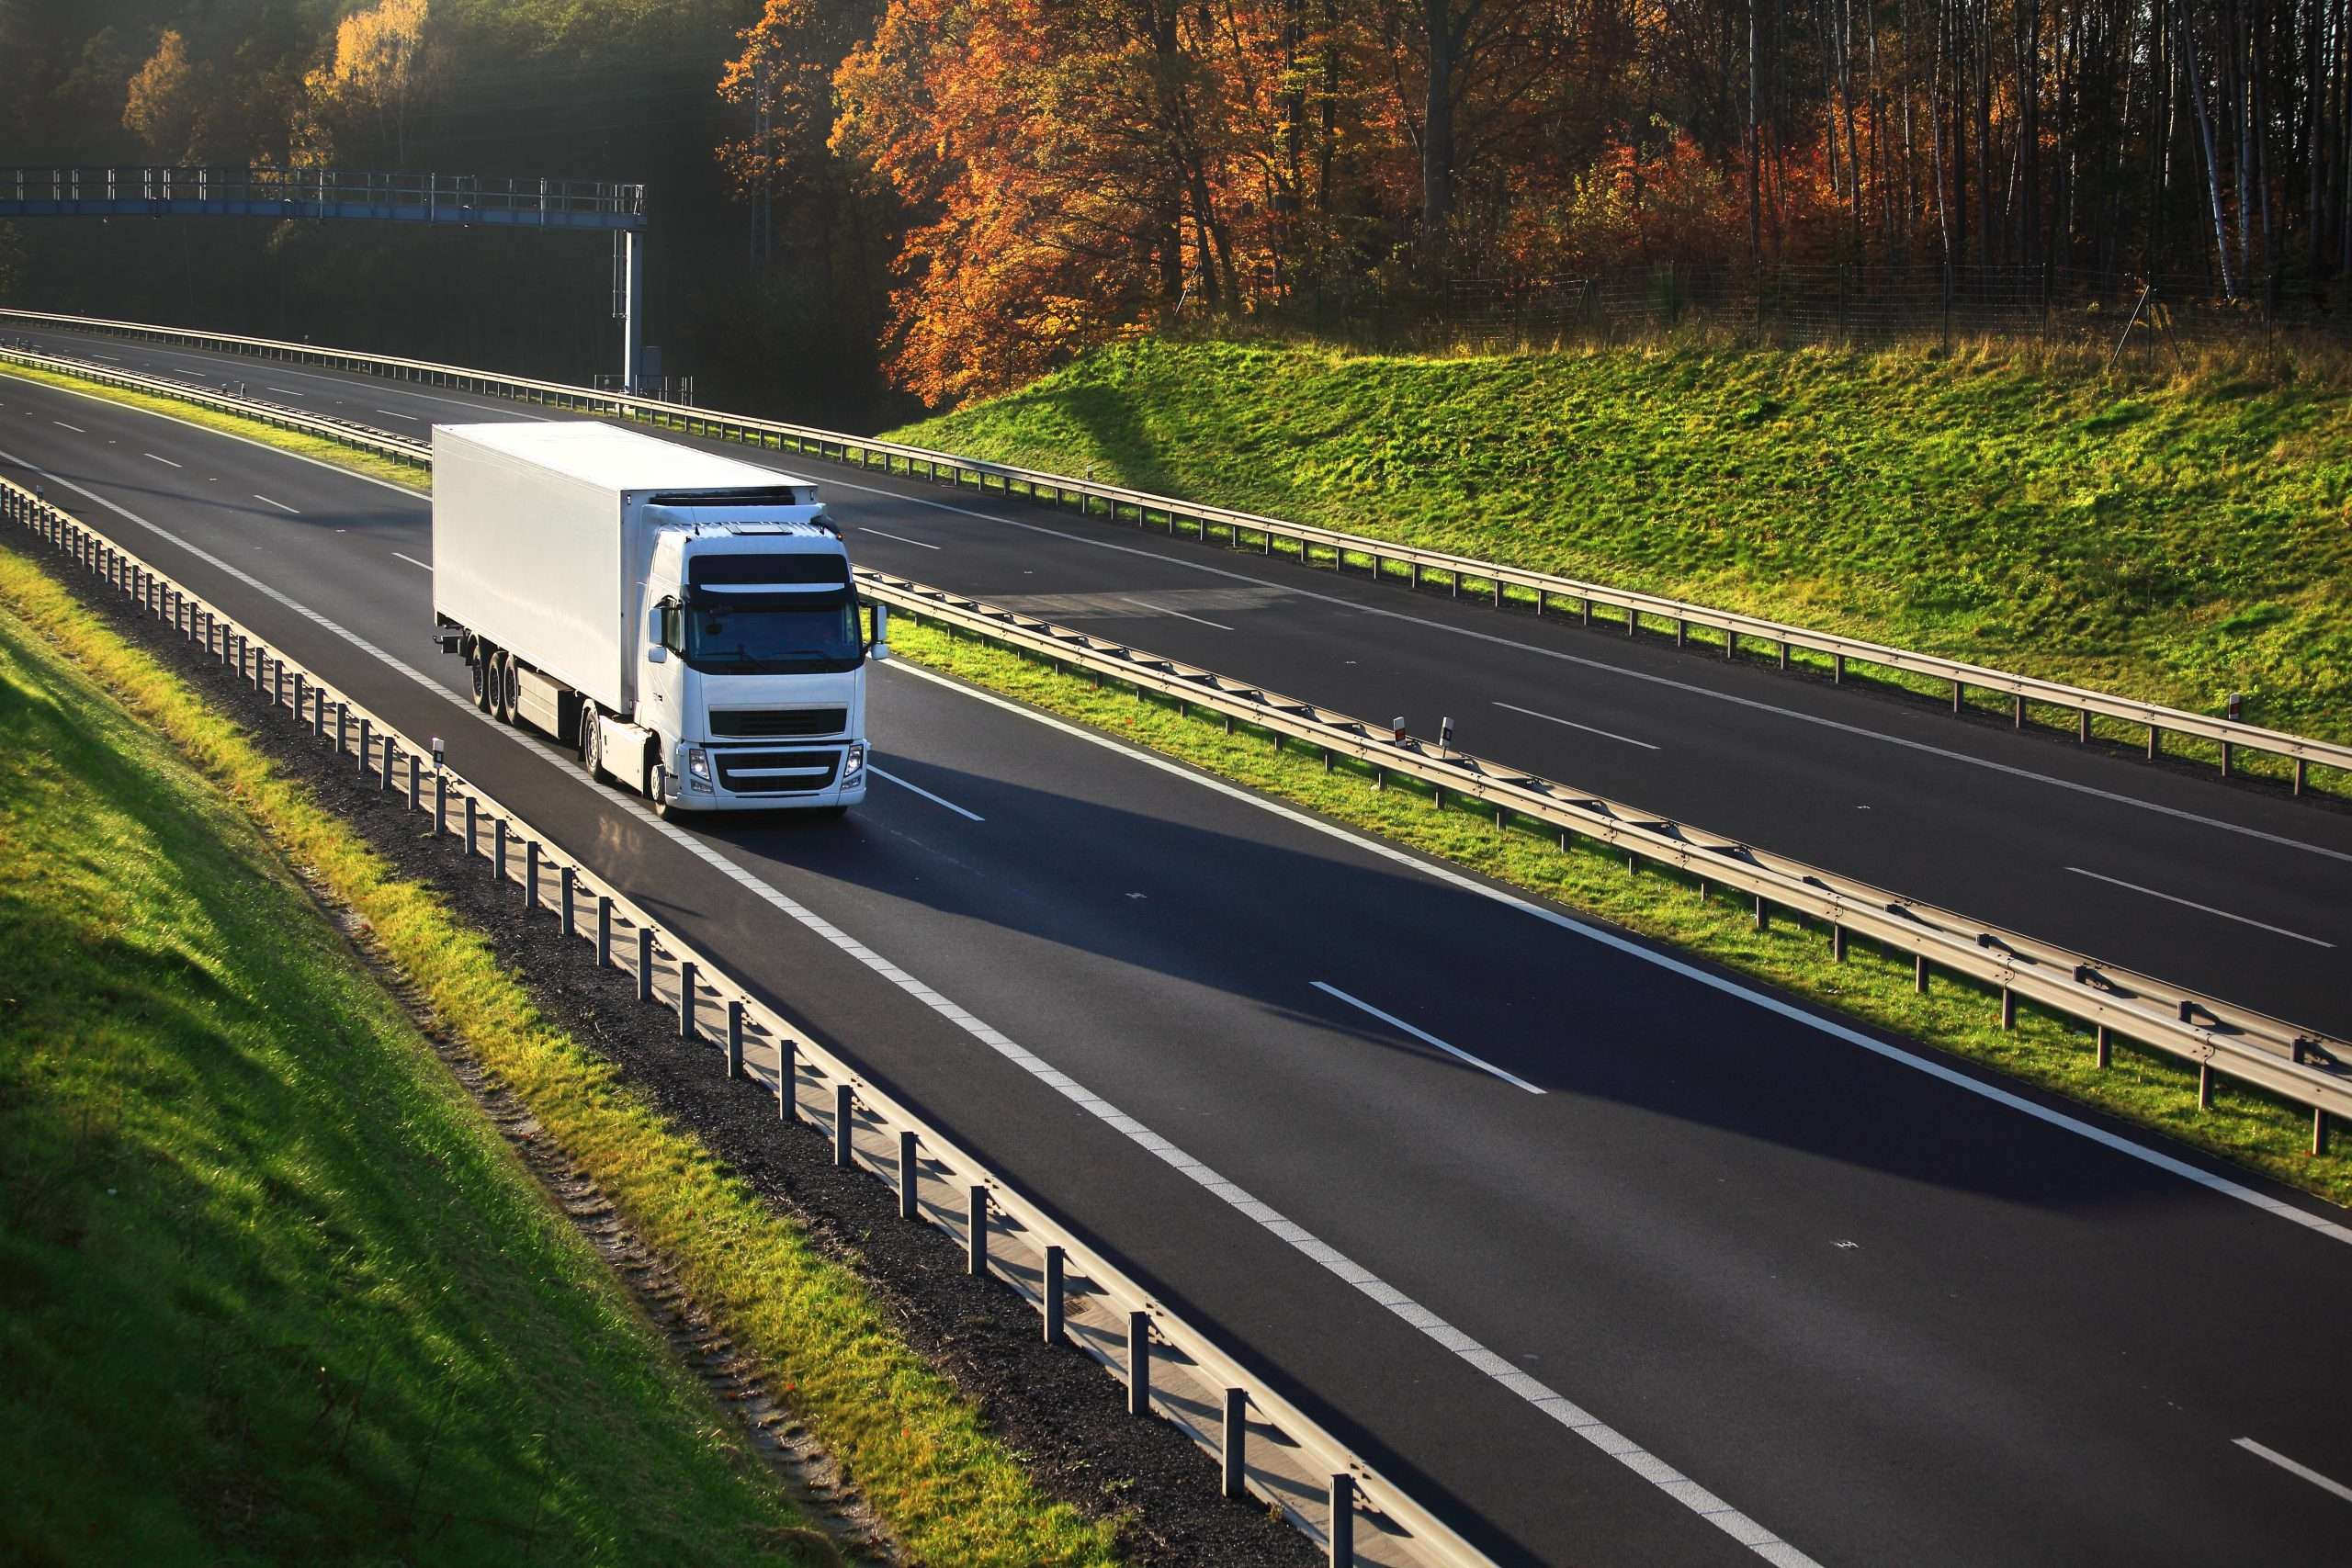 A delivery truck travels along a highway to fulfill the logistics needs of shipping services.